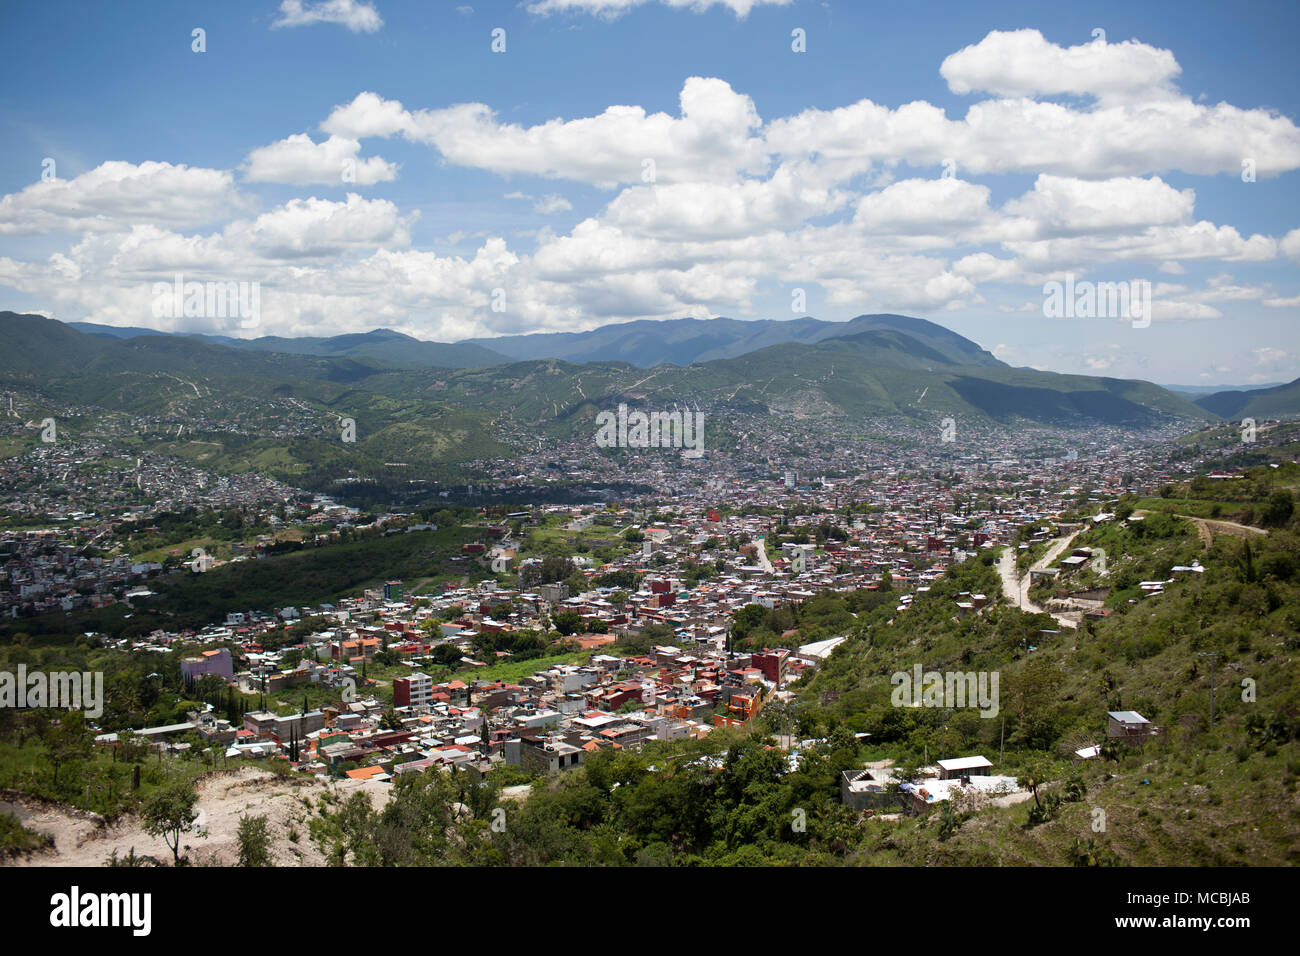 A view of Chilpancingo, Guerrero, Mexico on Saturday, July 26, 2015. The State of Guerrero has experienced a lot of violence, including the disappearance of 43 students last fall. - Stock Image